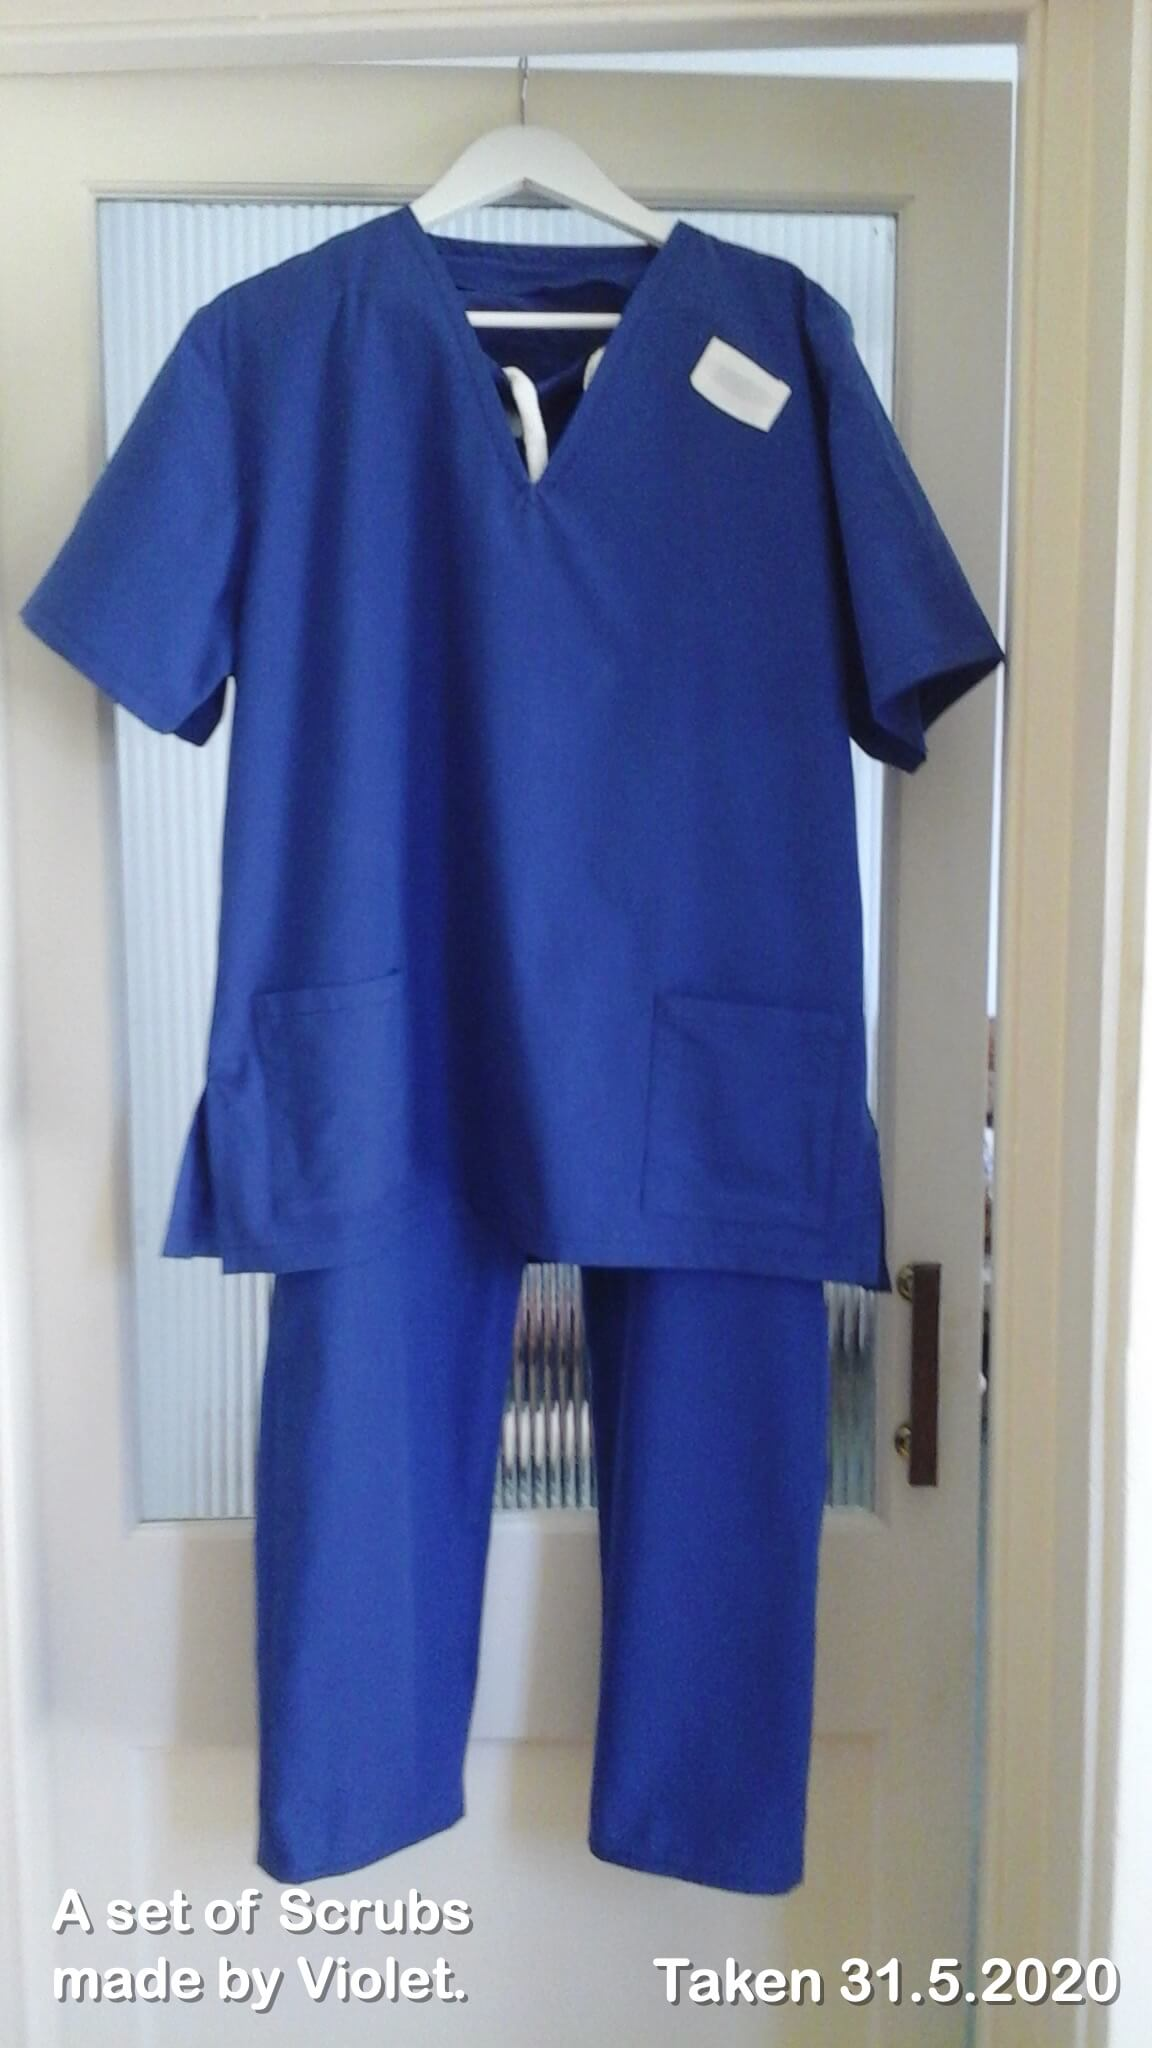 A set of Scrubs made by Violet.